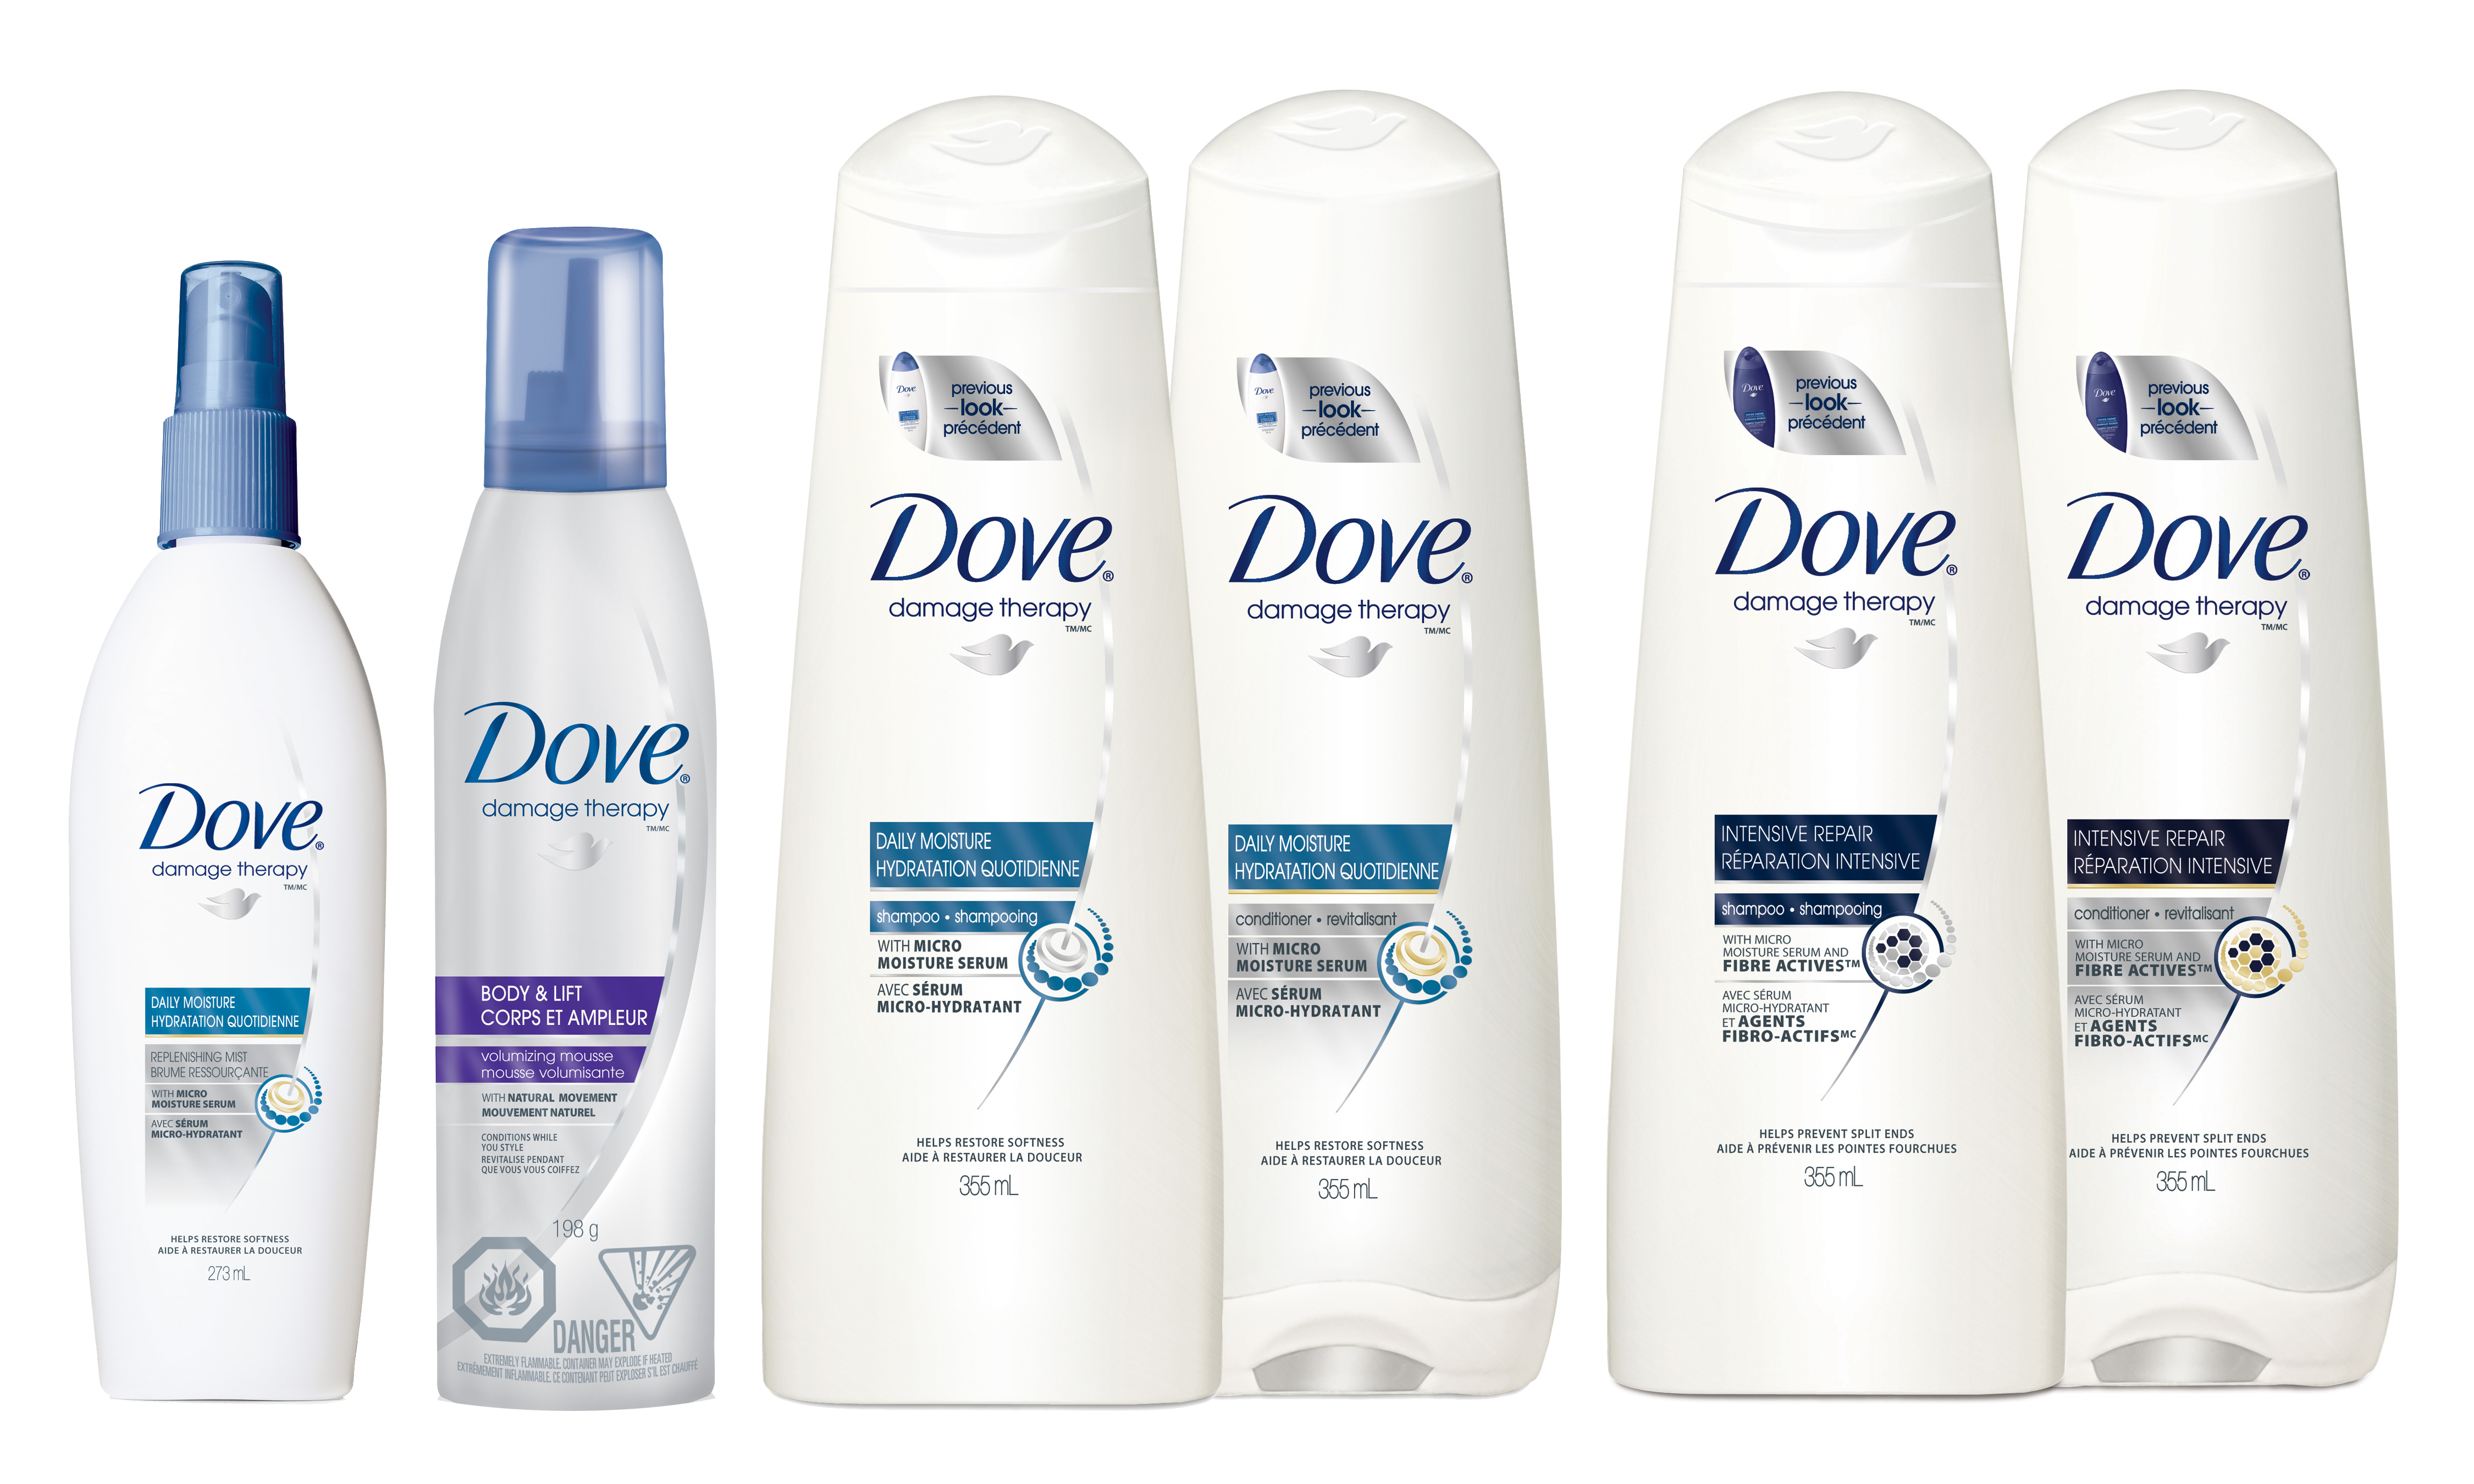 Dove datingsider i Canada